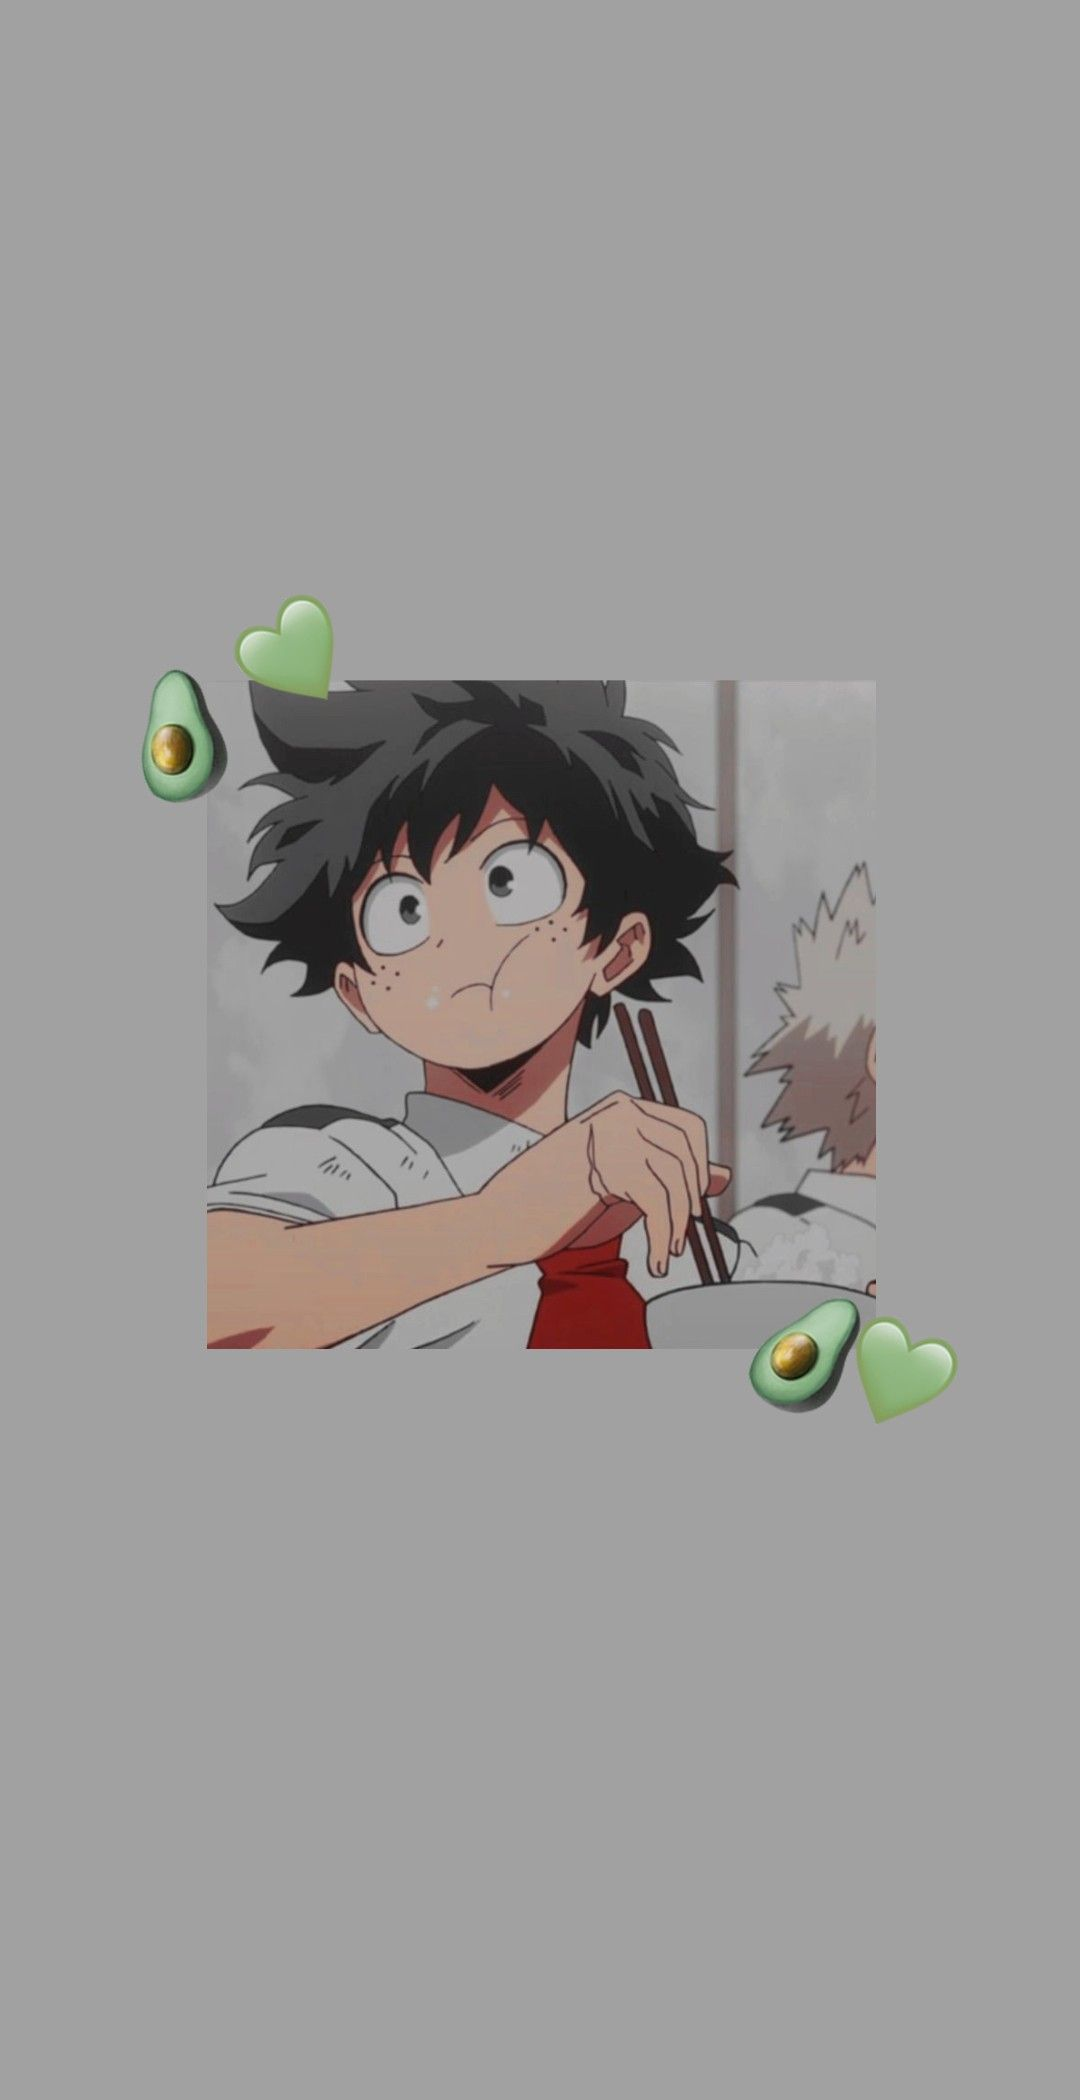 Deku From My Hero Academia Wallpaper Cute Anime Wallpaper Anime Wallpaper Hero Wallpaper